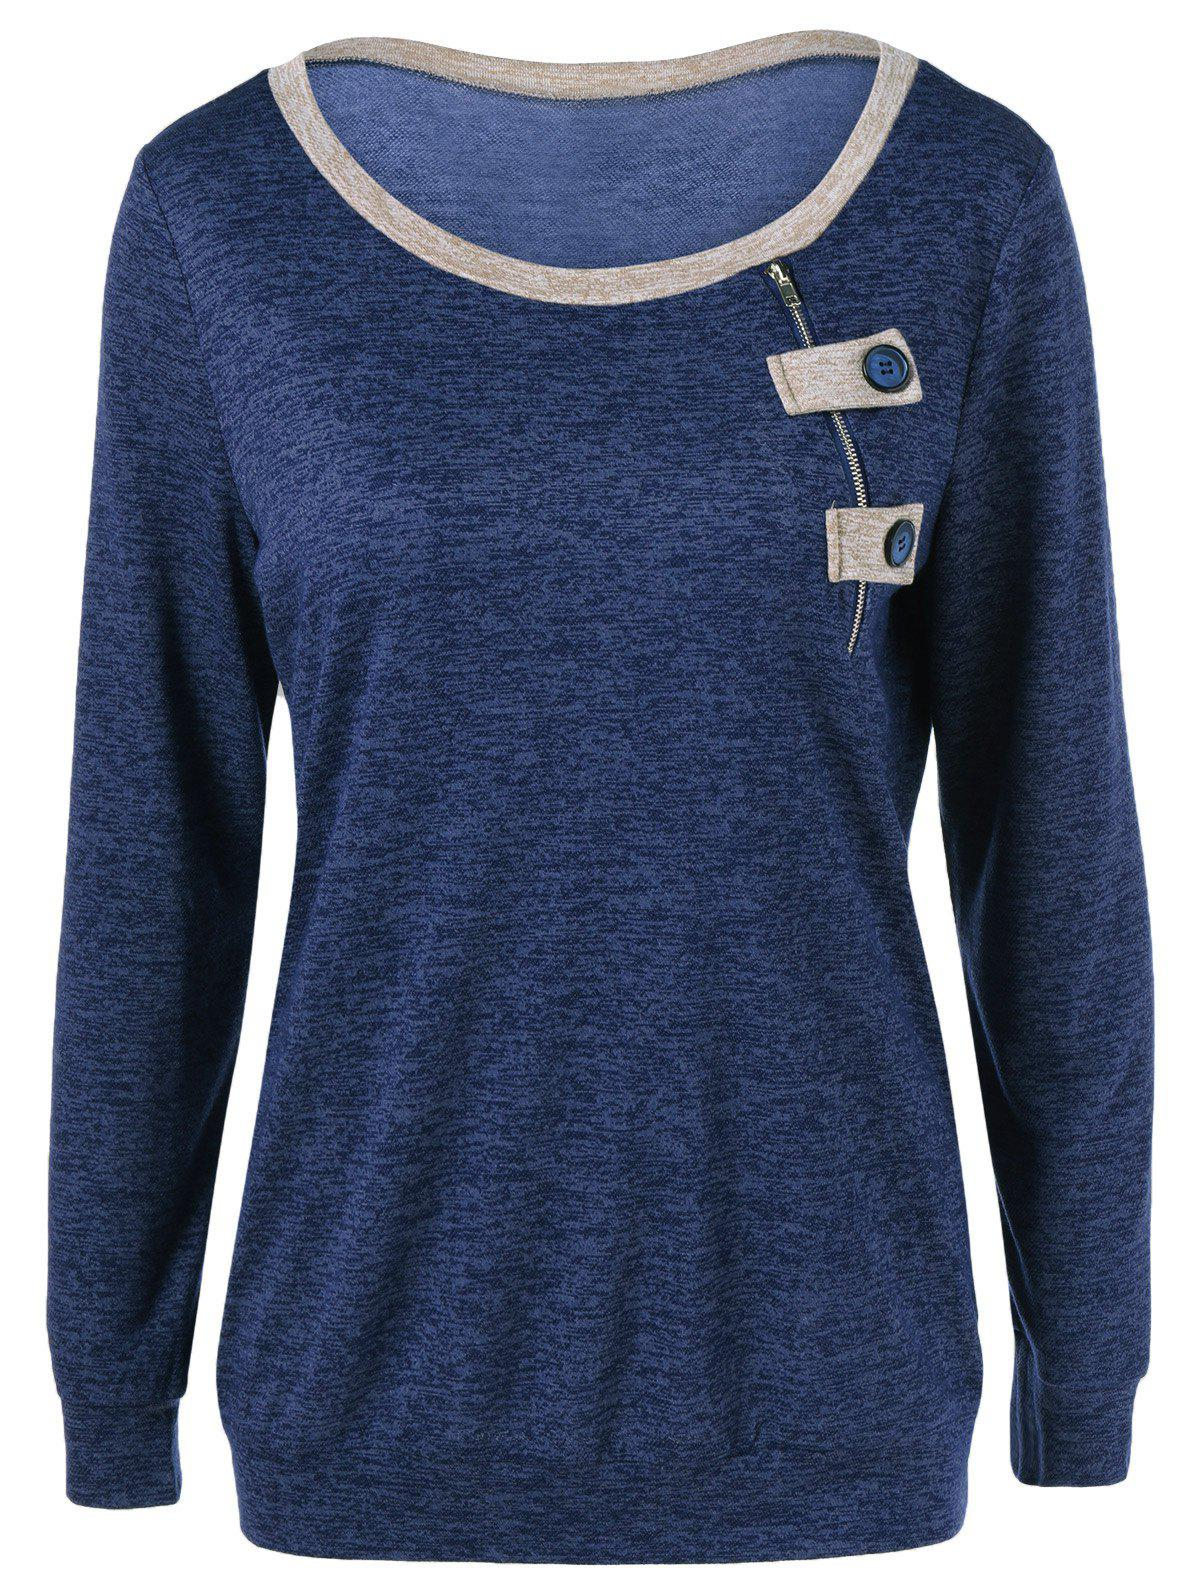 Outfit Contrast Trim Button Decorated T-Shirt